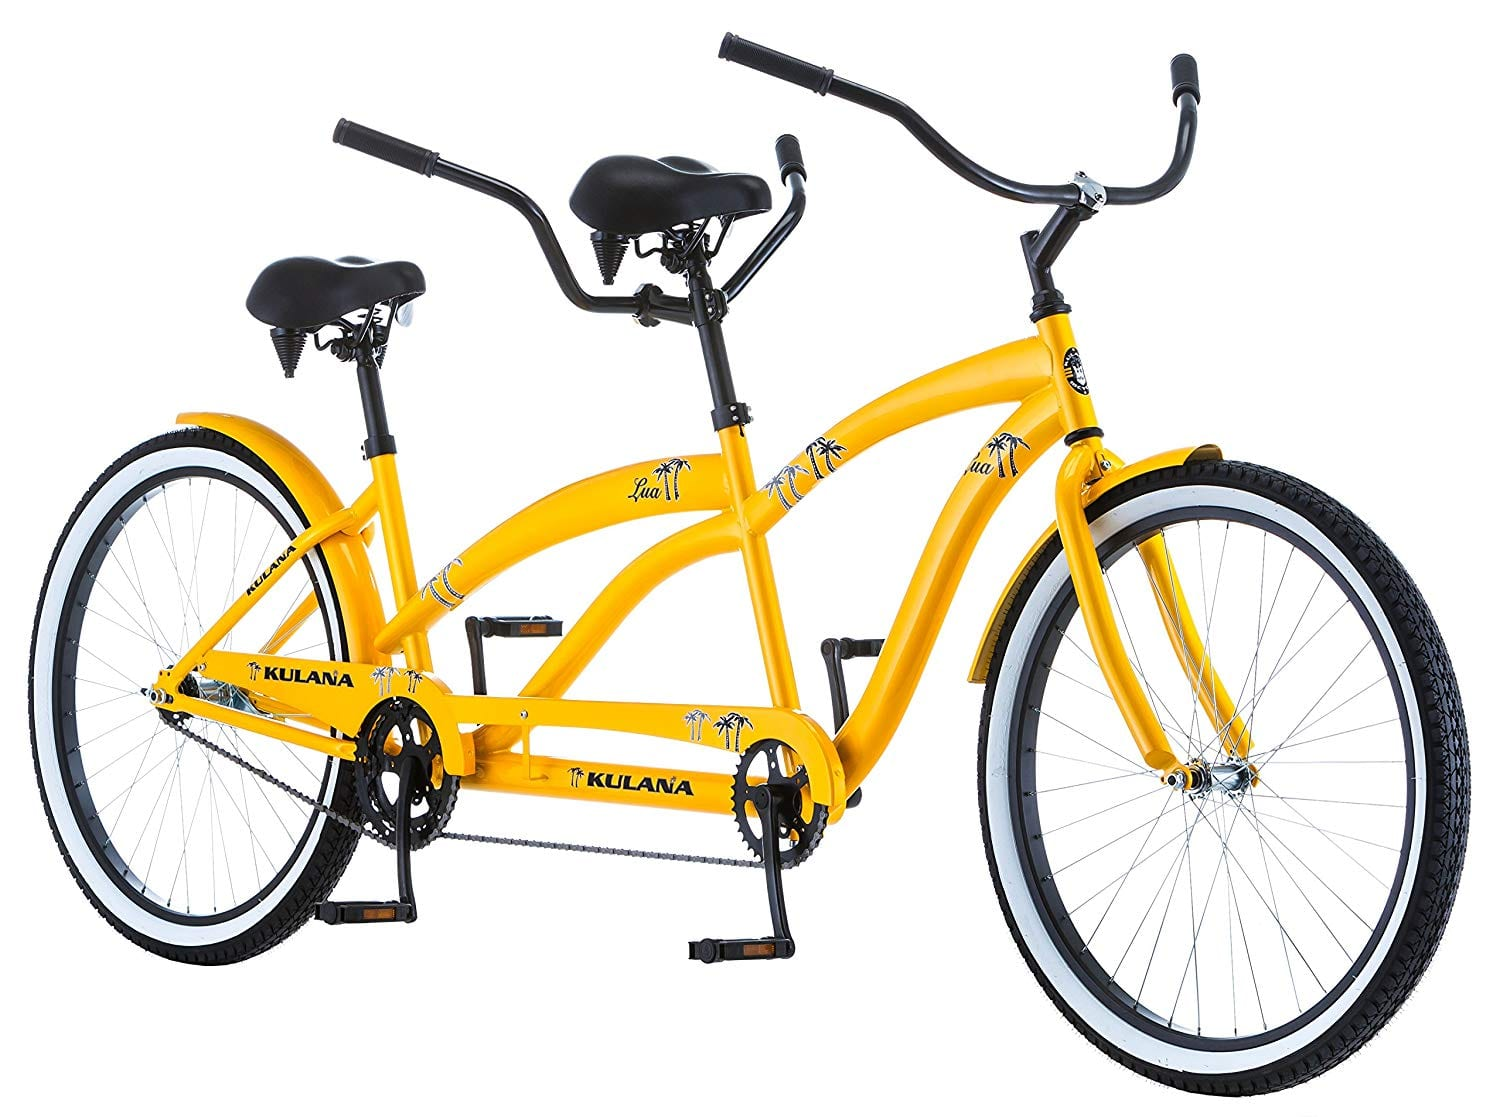 Kulana-Lua-Single-Speed-Tandem 26-Inch Wheel-Yellow-Bike